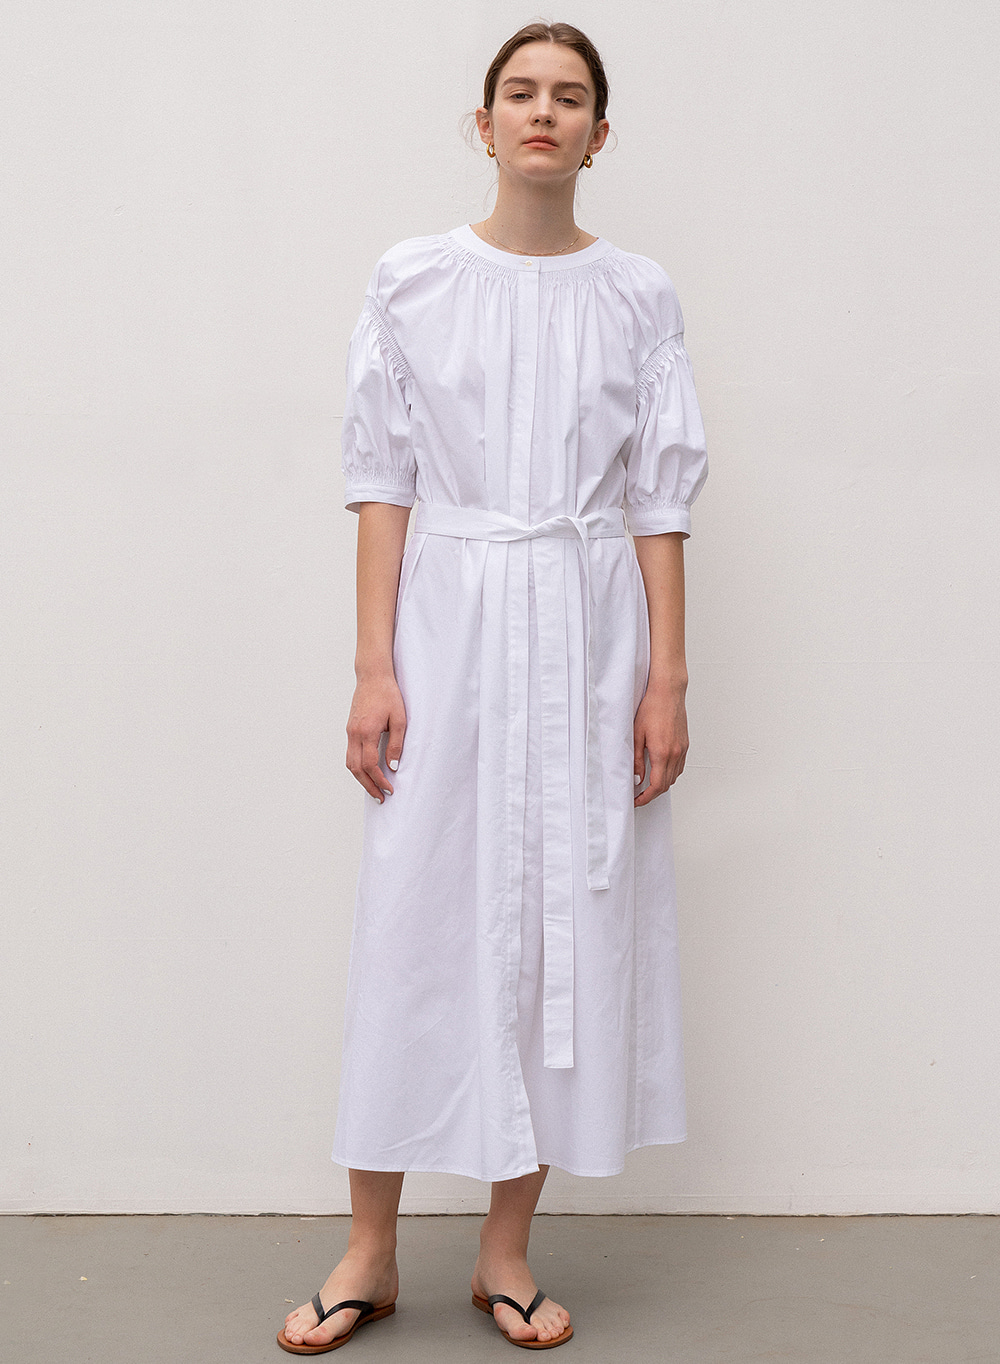 [ESSENTIAL] Balloon Sleeve Dress White